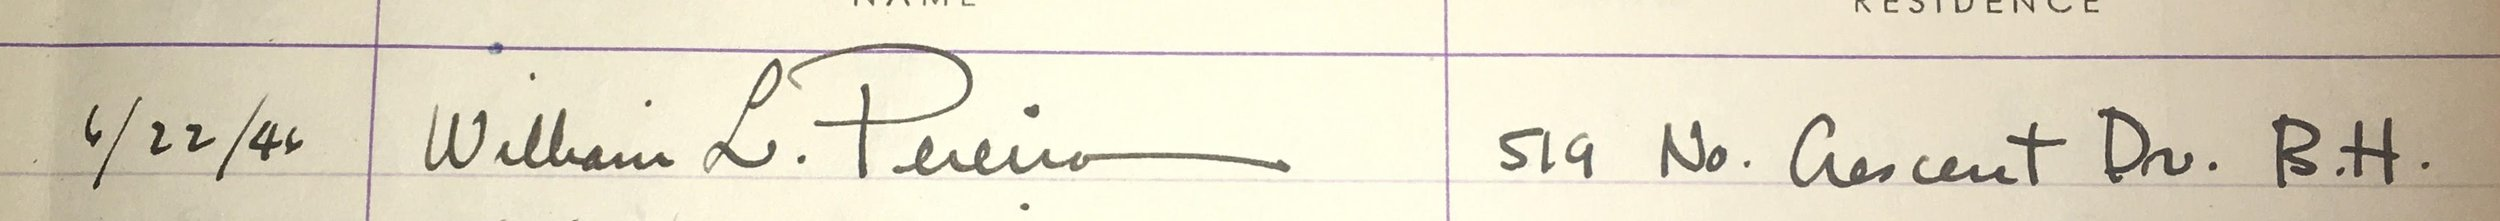 William eonard Pereira's signature dated June 22, 1946, indicating his address as 519 N. Crescent Dr. Beverly Hills, CA